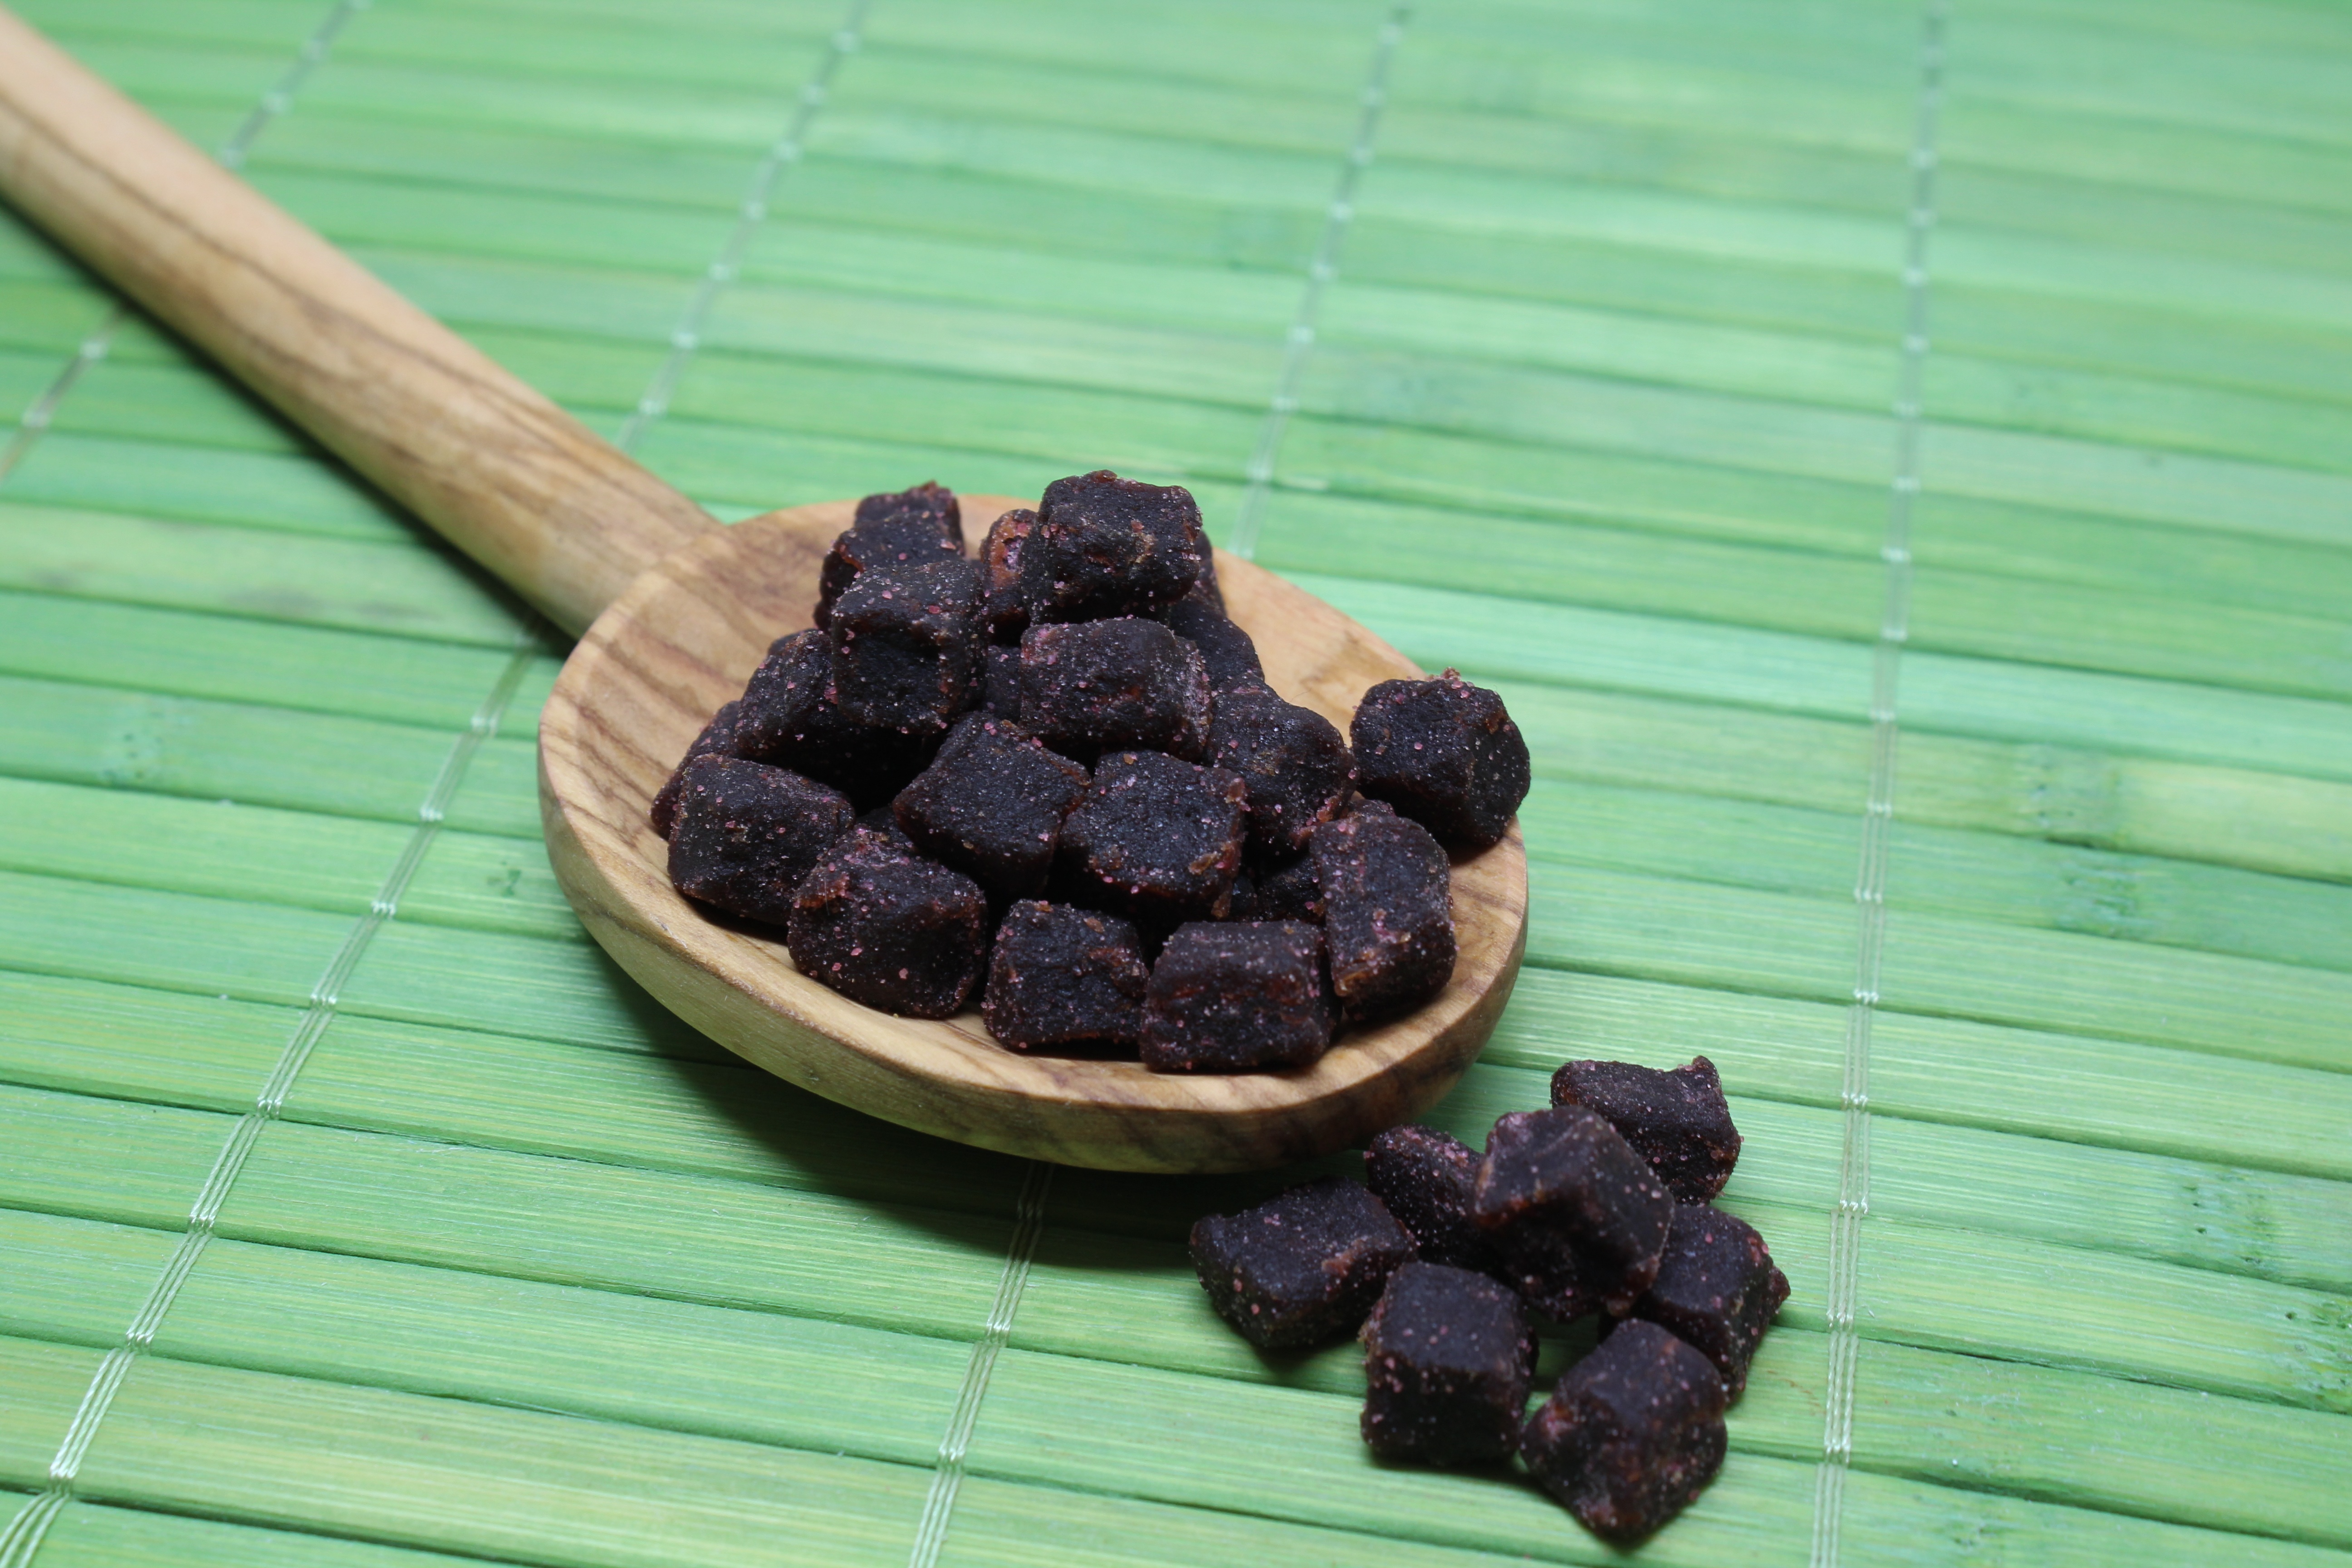 Image of Açai Berries in a wooden spoon